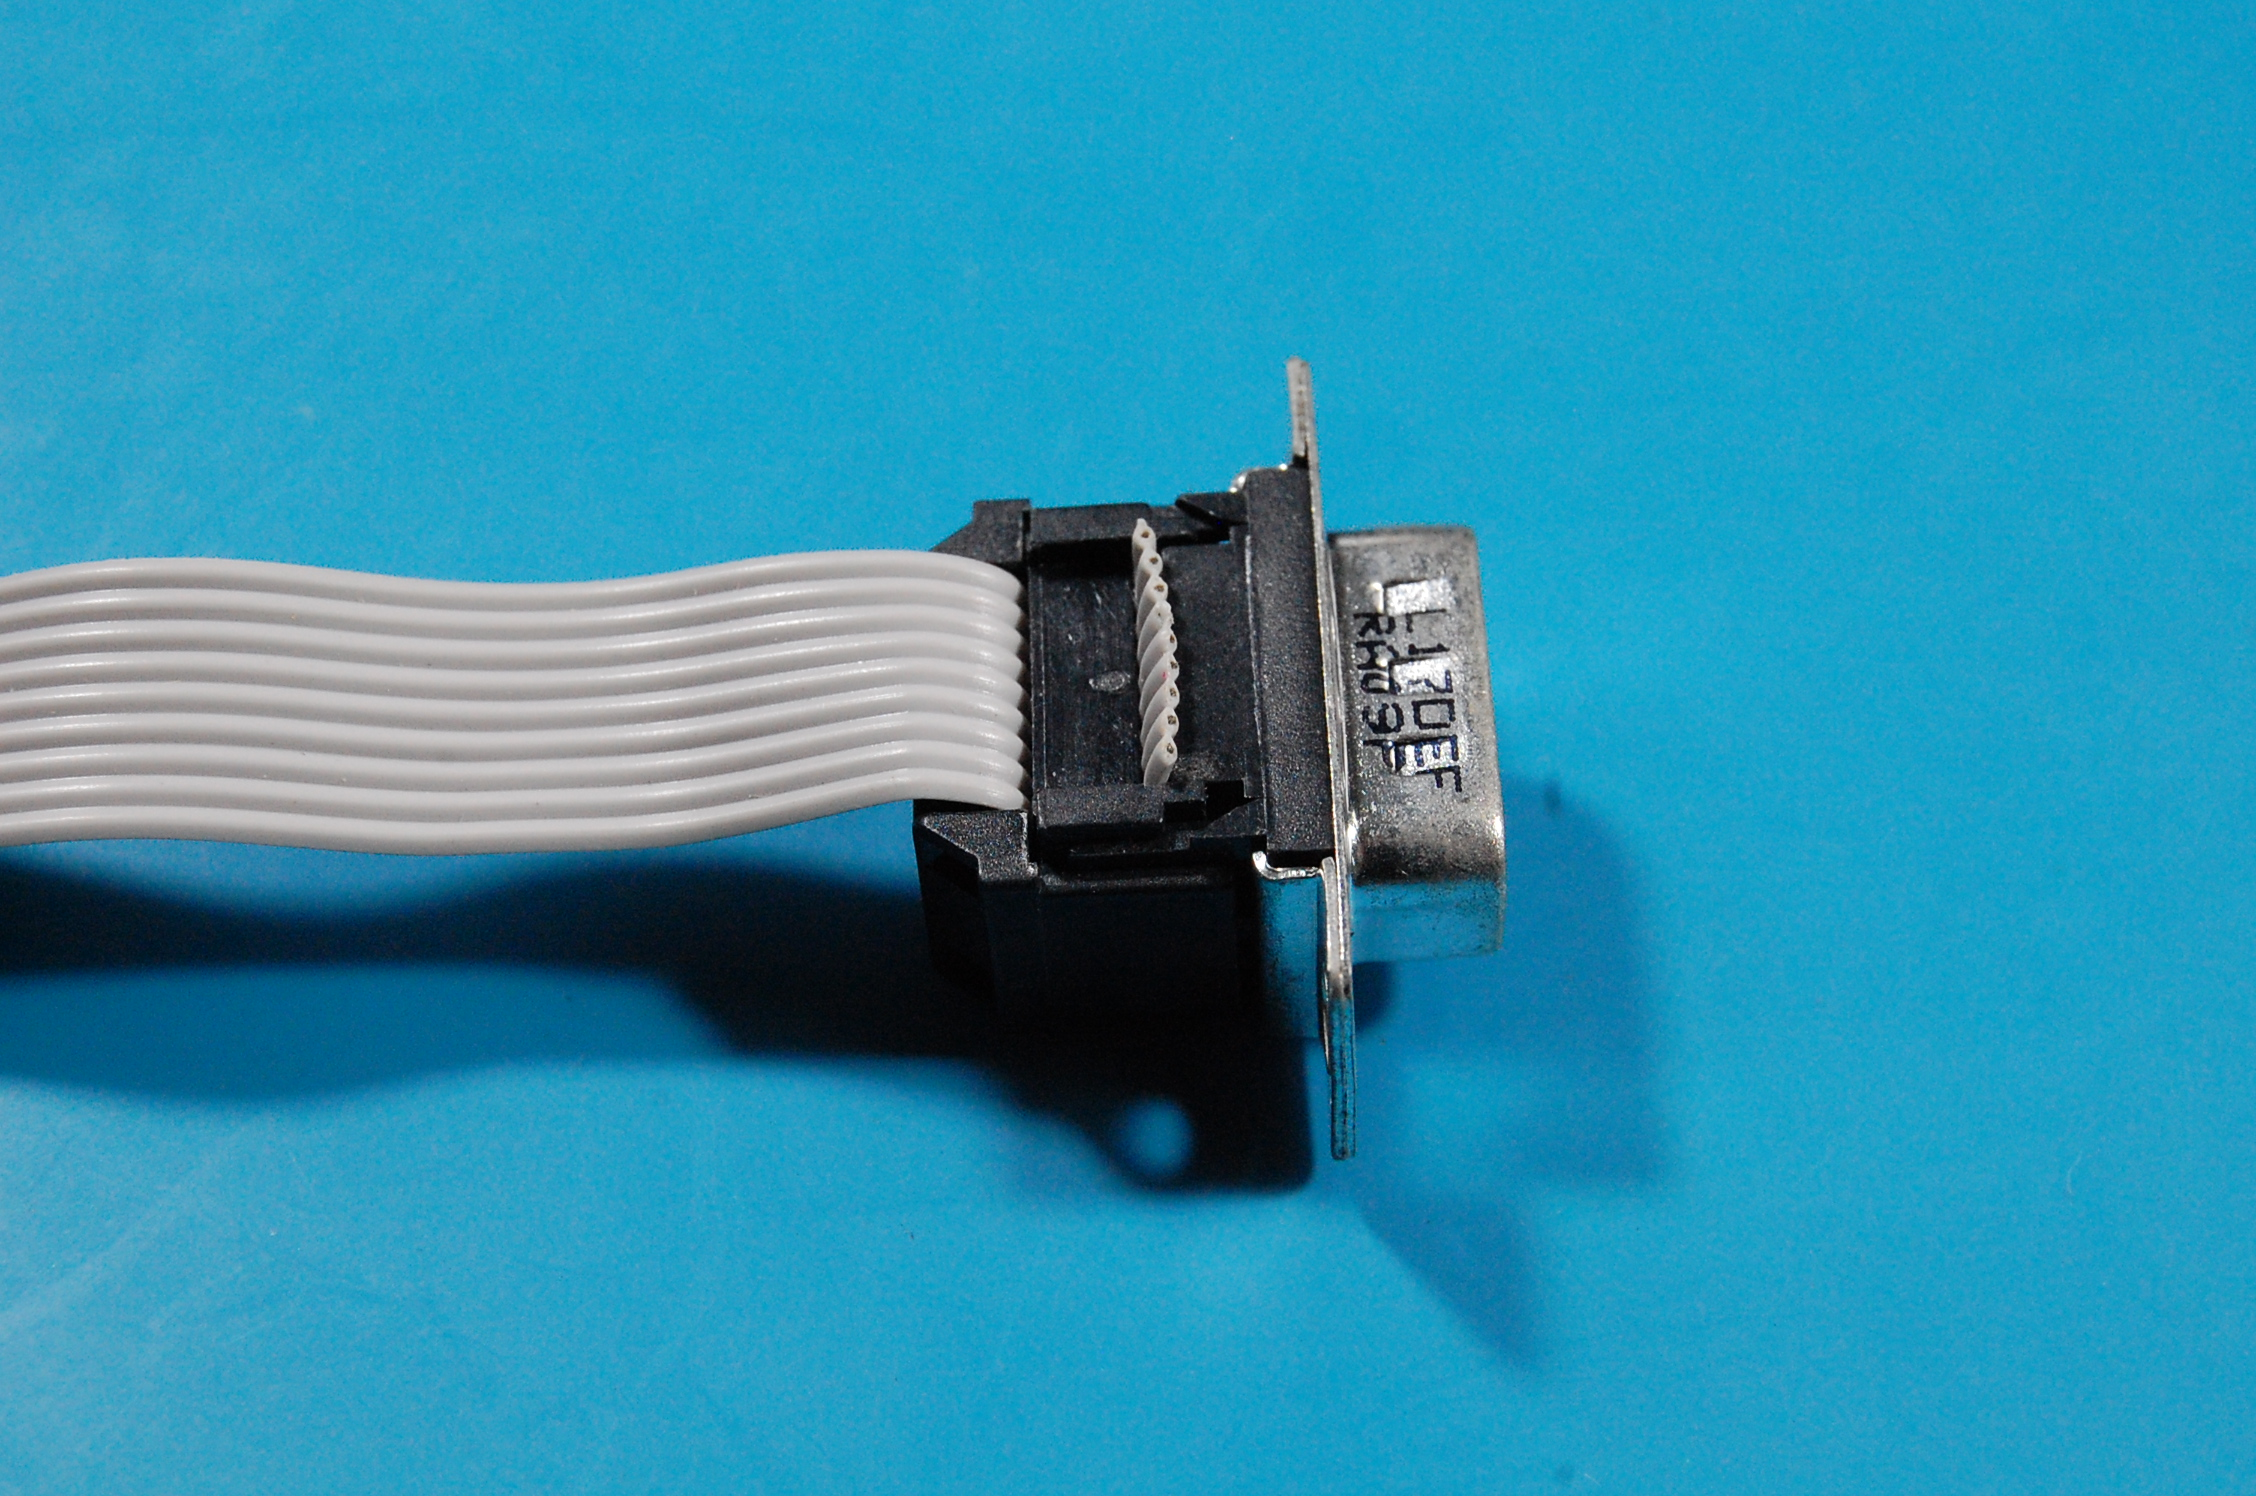 Crimped IDC to DB9 connector